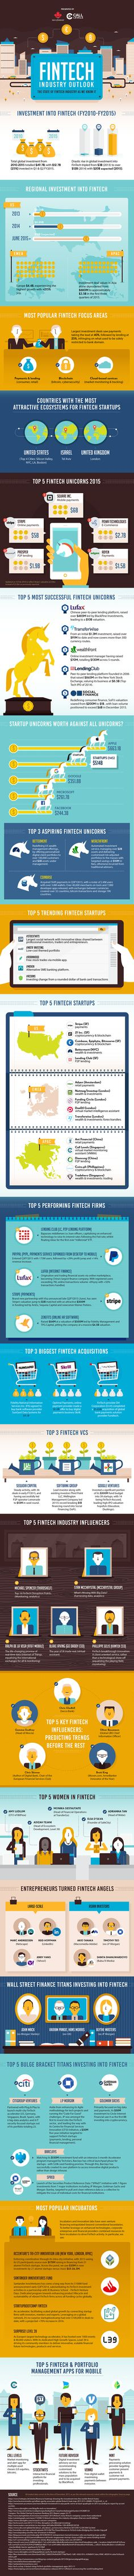 The State of FinTech in 2016 Infographic